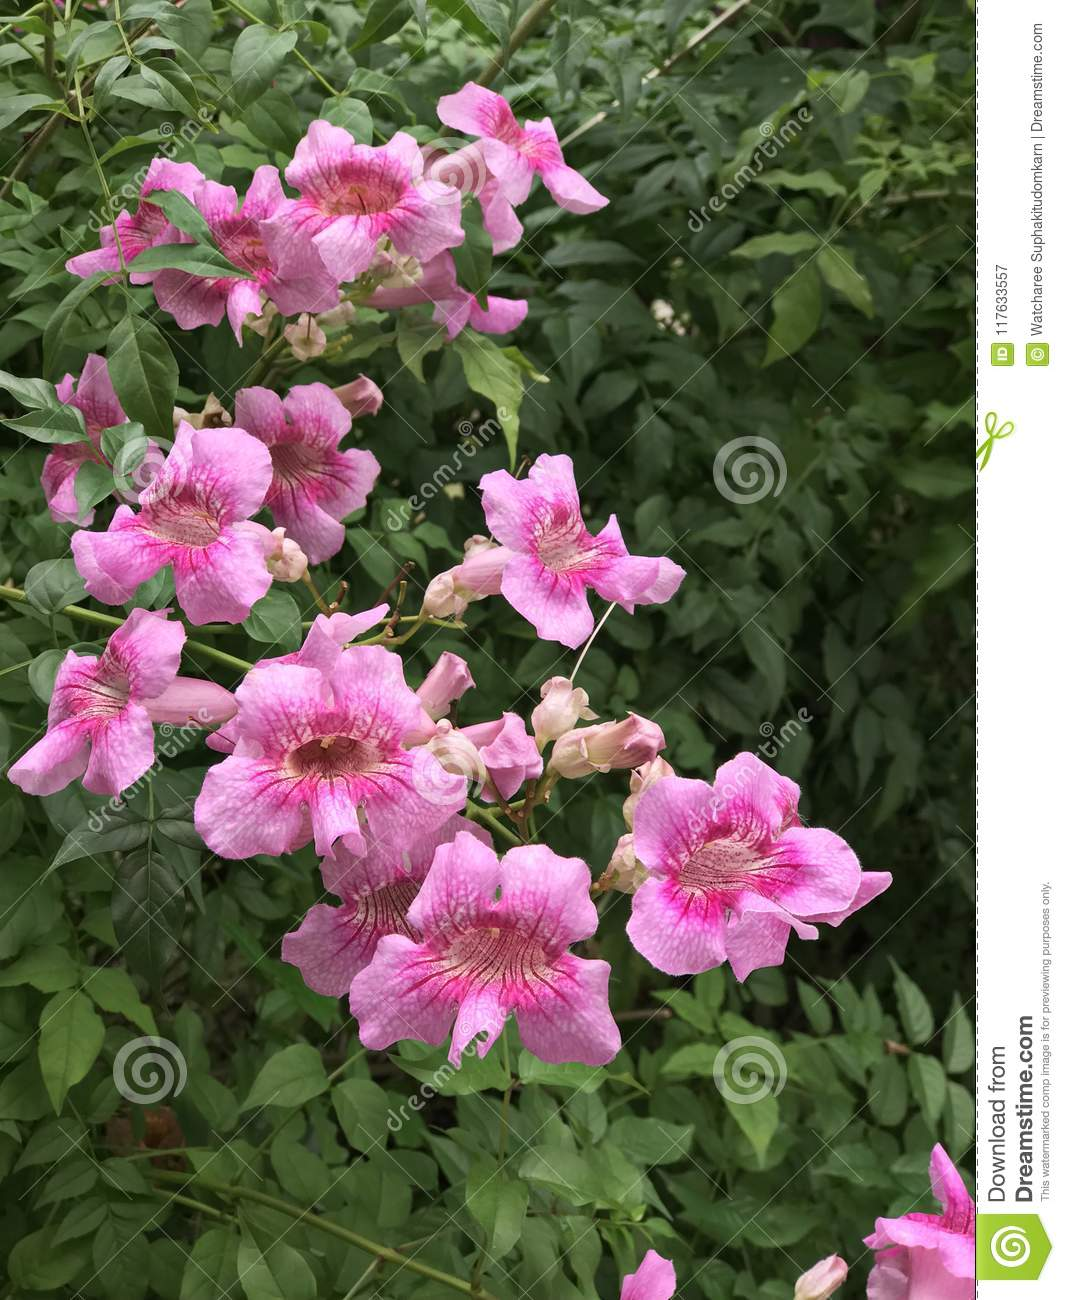 Pink trumpet vine or port sthns creeper or podranea ricasoliana pink trumpet vine or port sthns creeper or podranea ricasoliana or campsis radicans or trumpet creeper or cow itch vine or hummingbird vine flowers are mightylinksfo